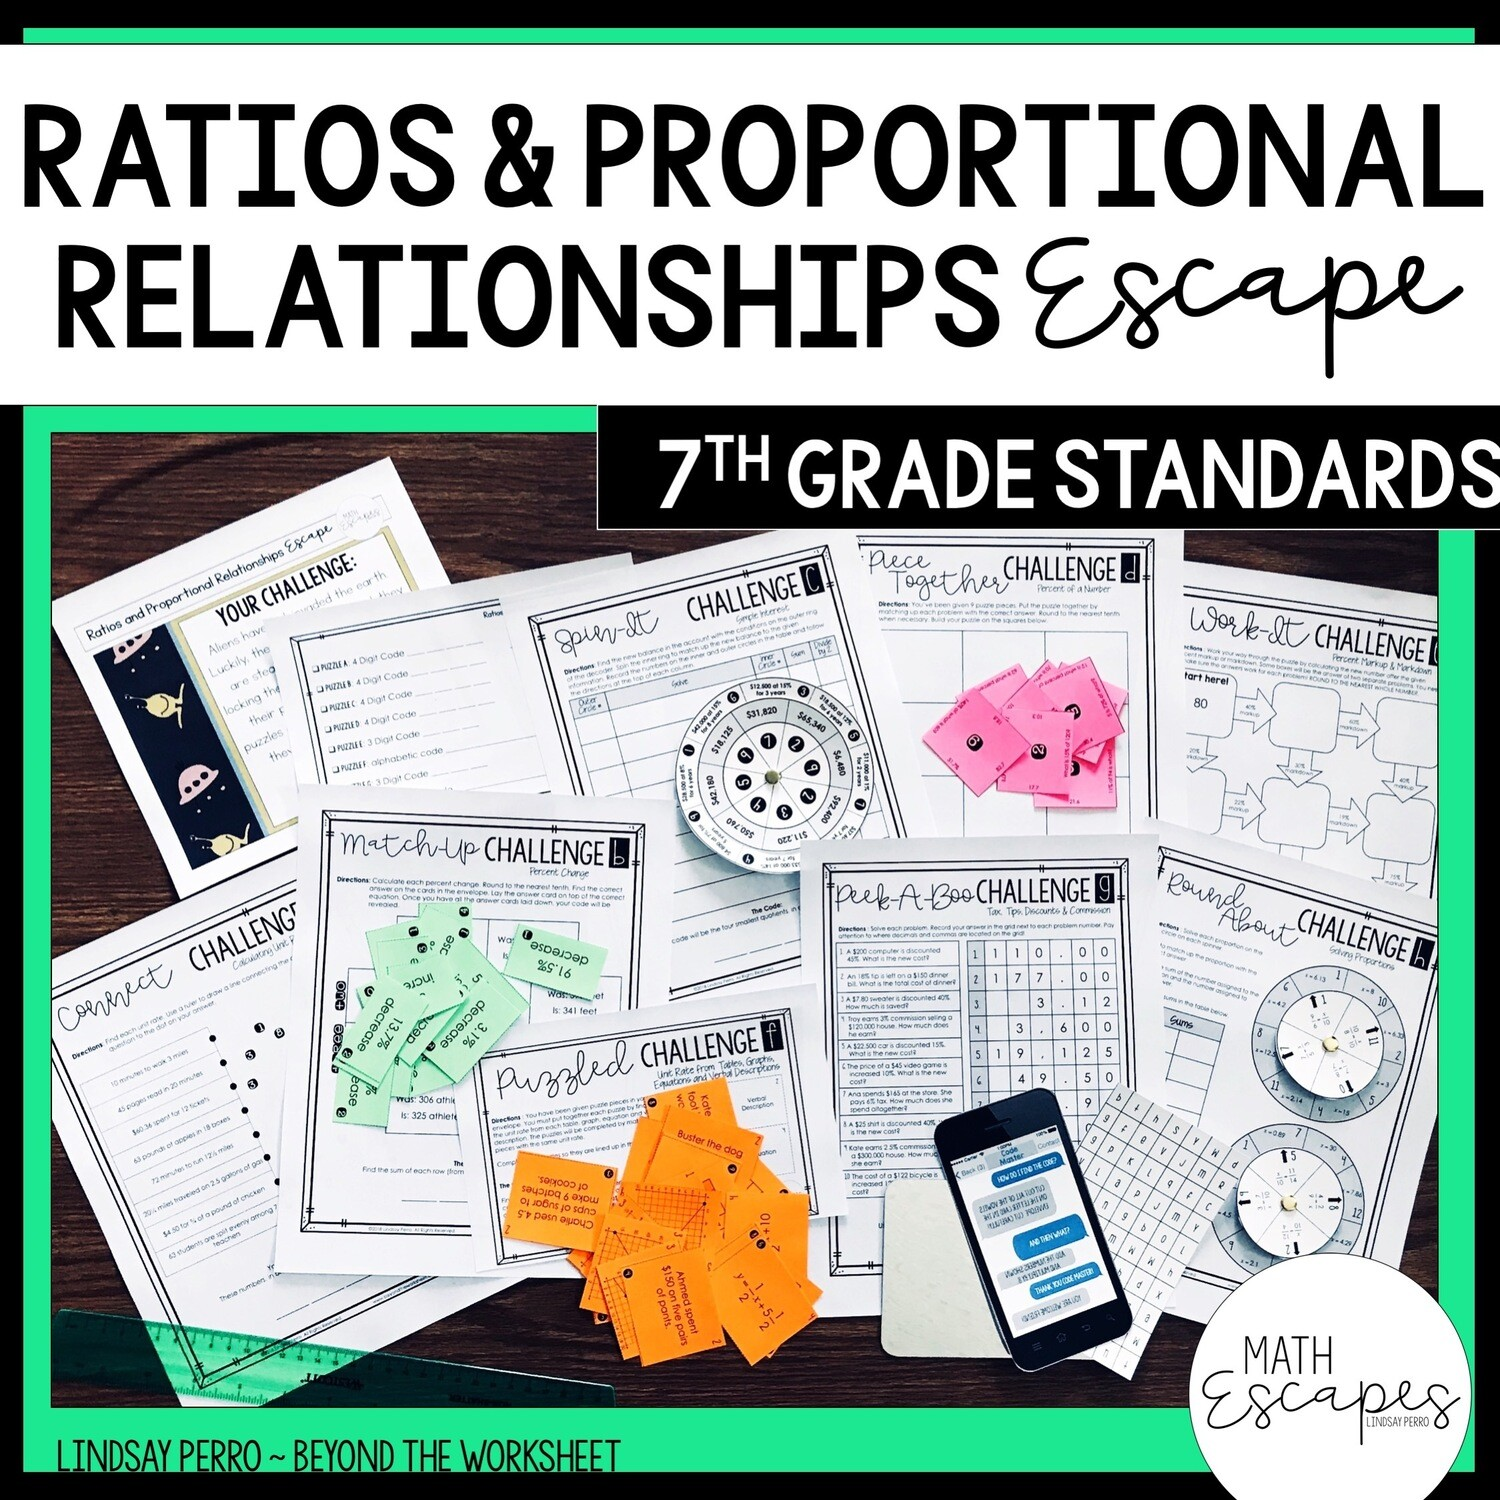 7th Grade Ratios And Proportional Reasoning Escape Room